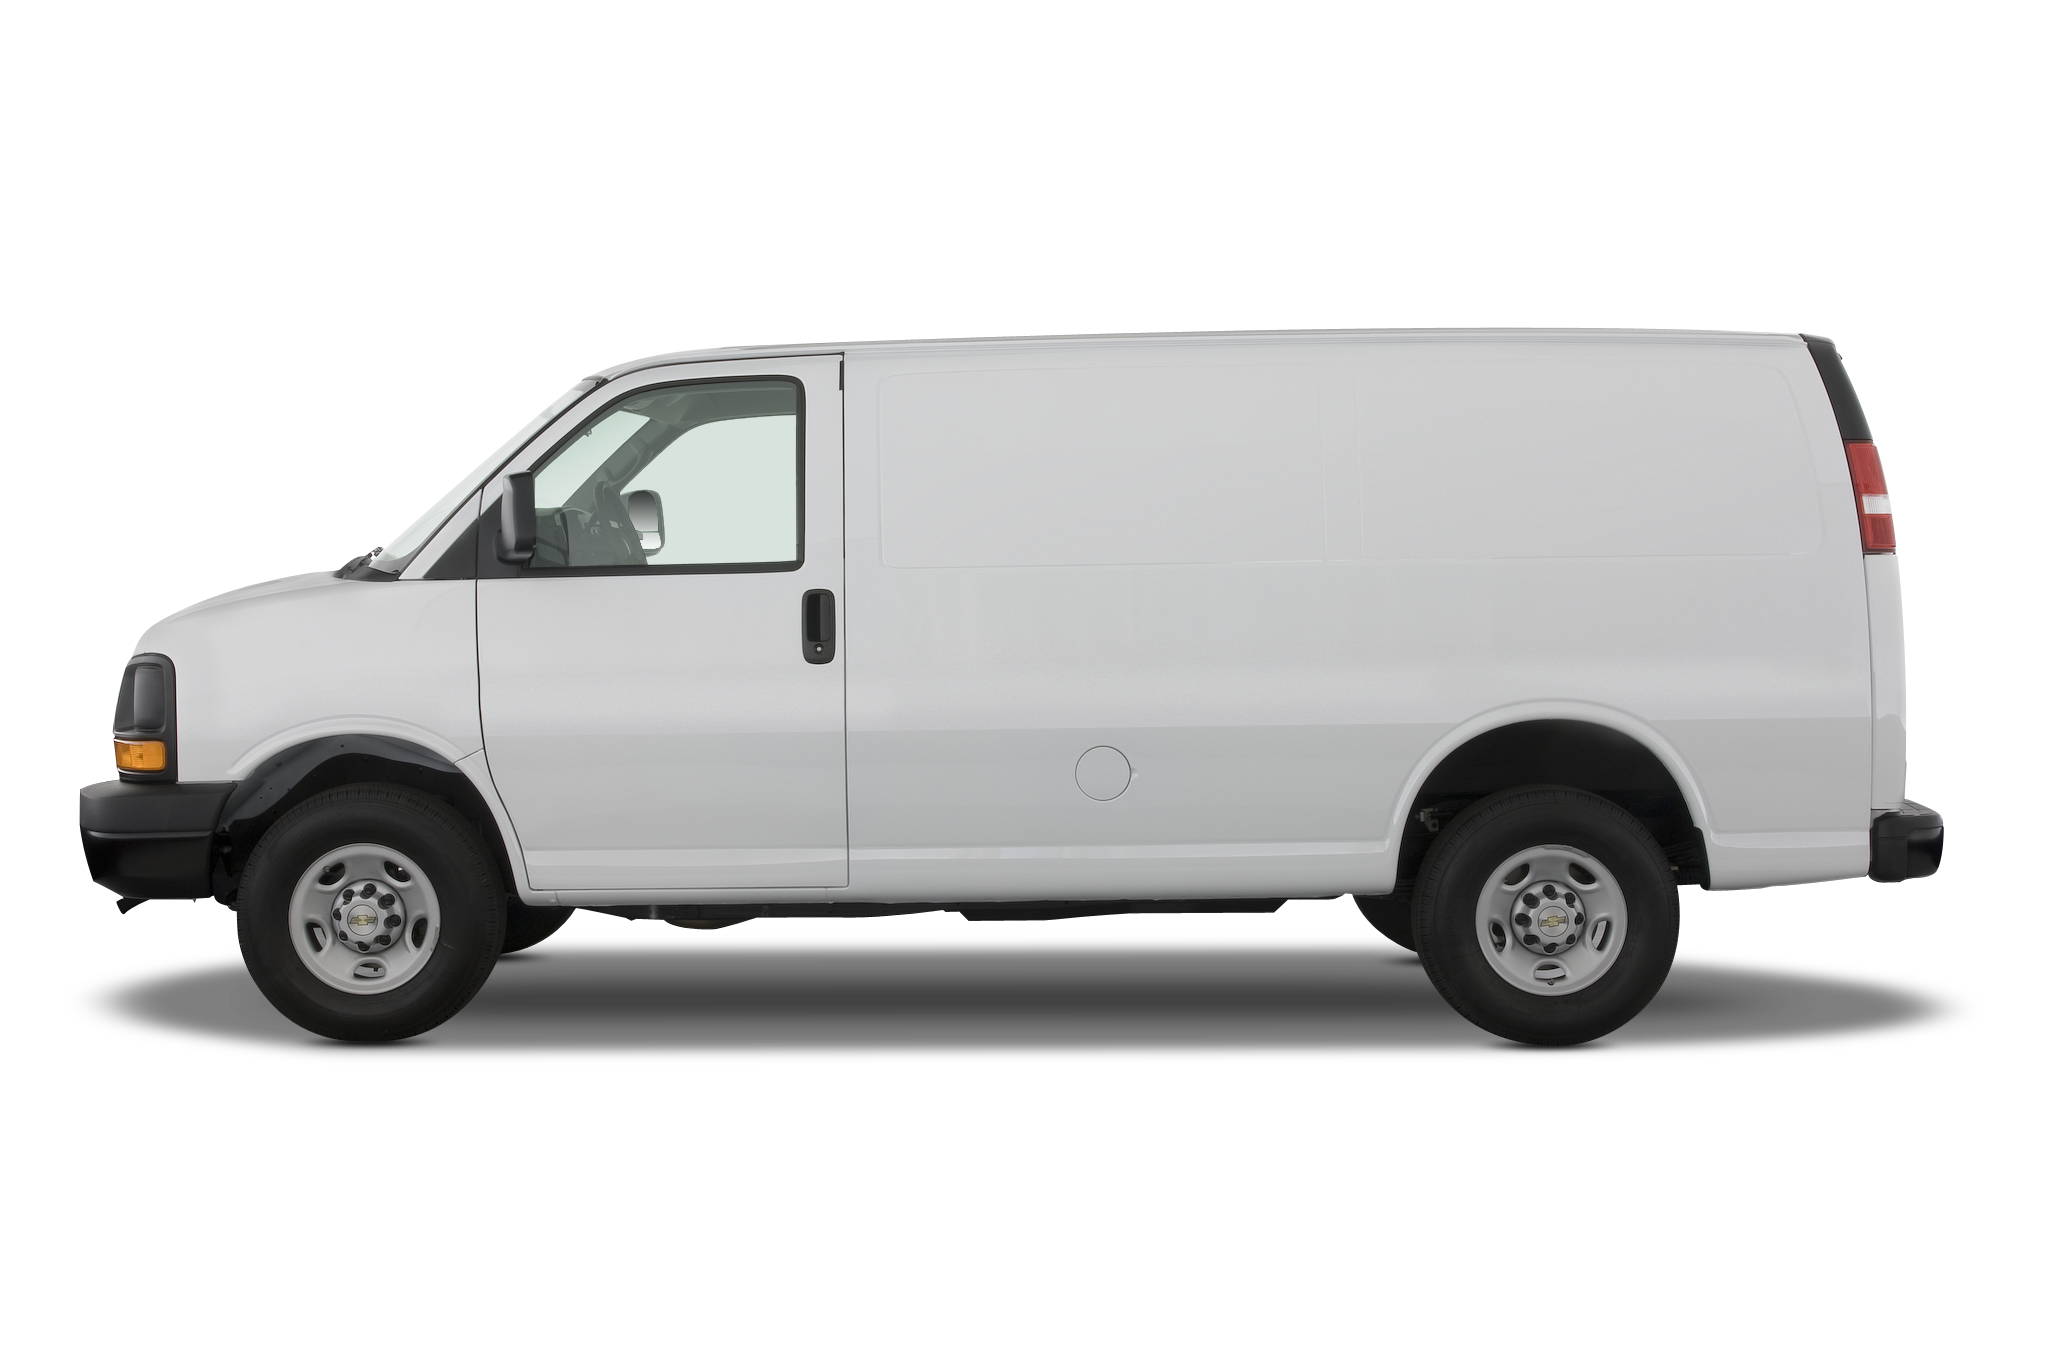 Van PNG HD Transparent Van HD